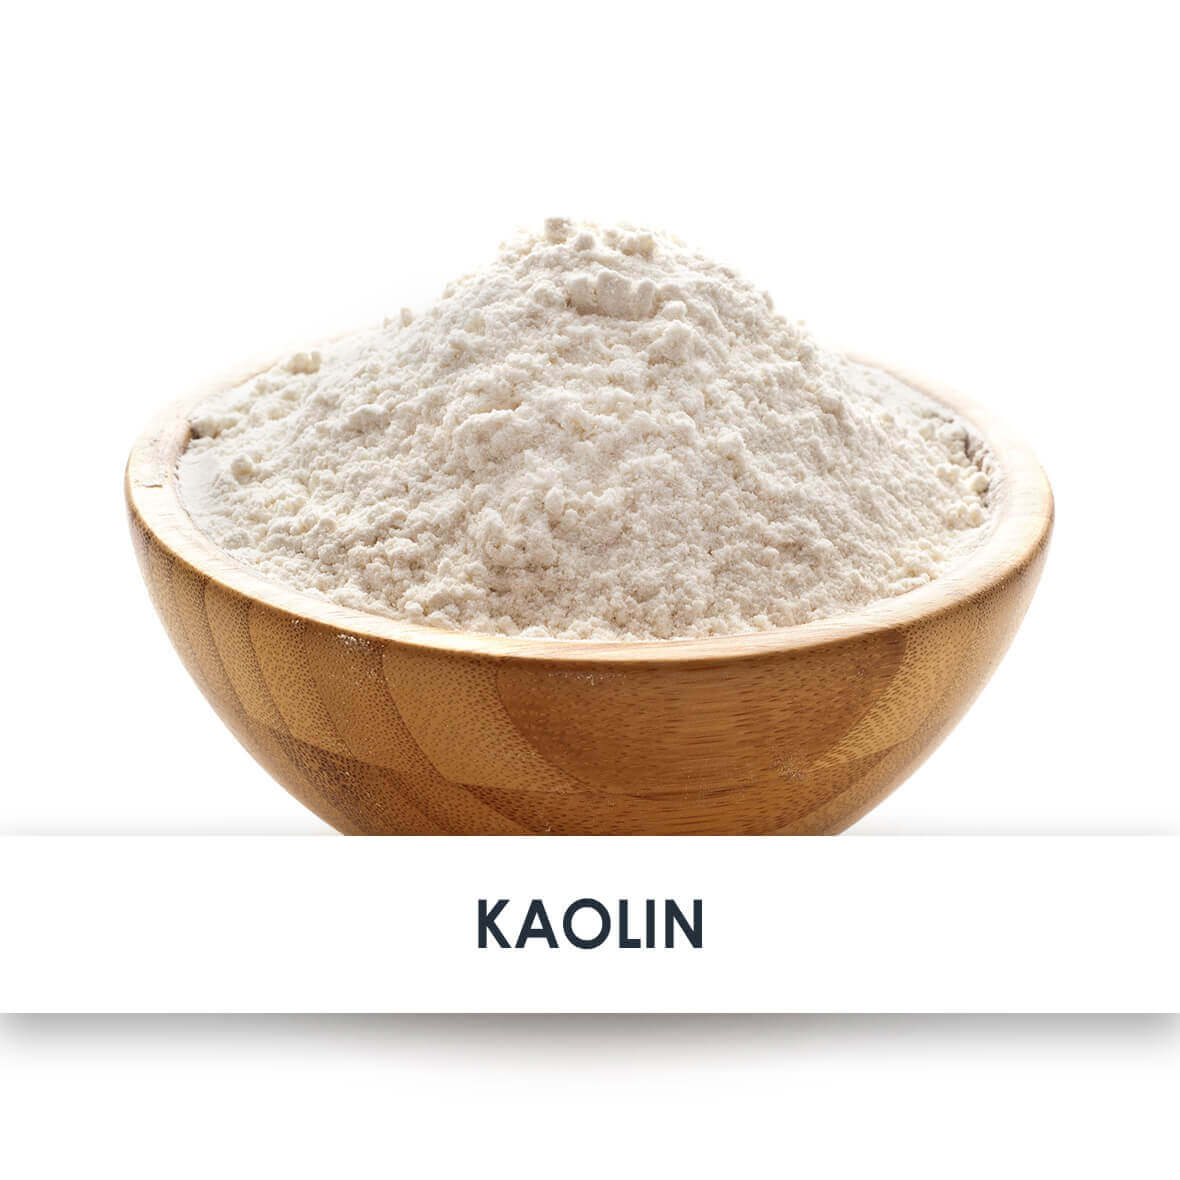 Kaolin Skincare Benefits